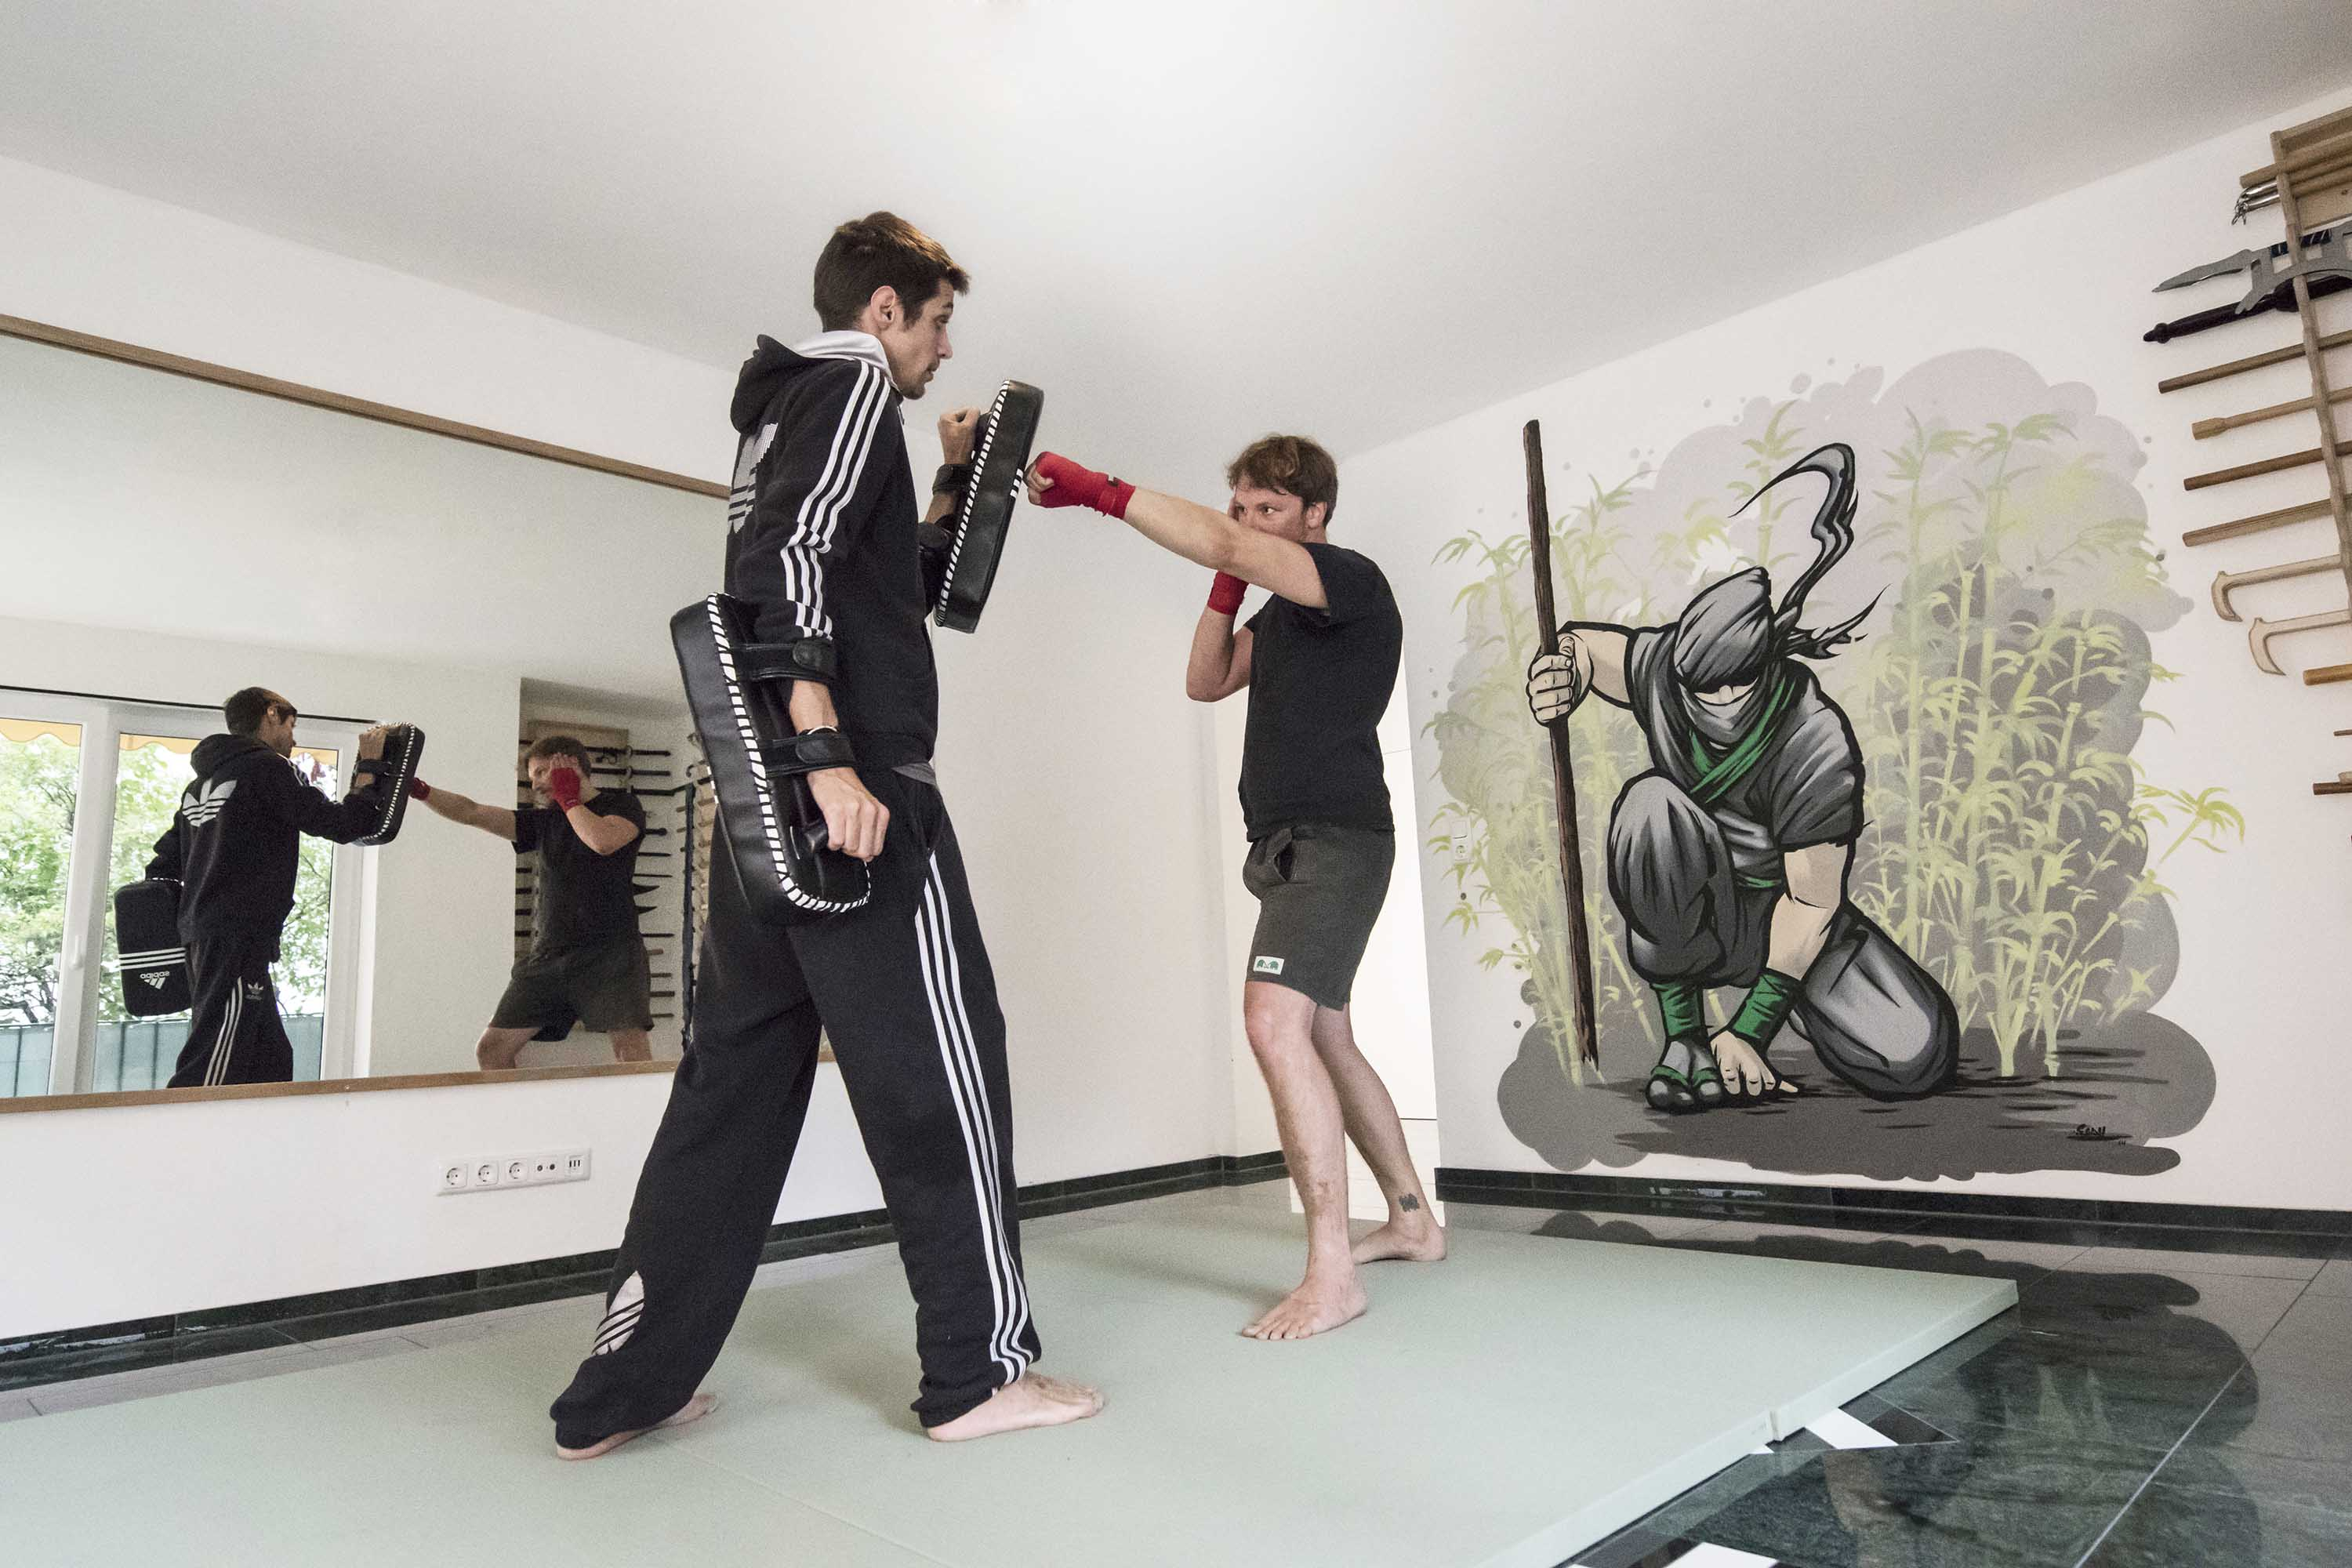 RONIN_DOJO_Traditionelles_thaiboxen_Training_03